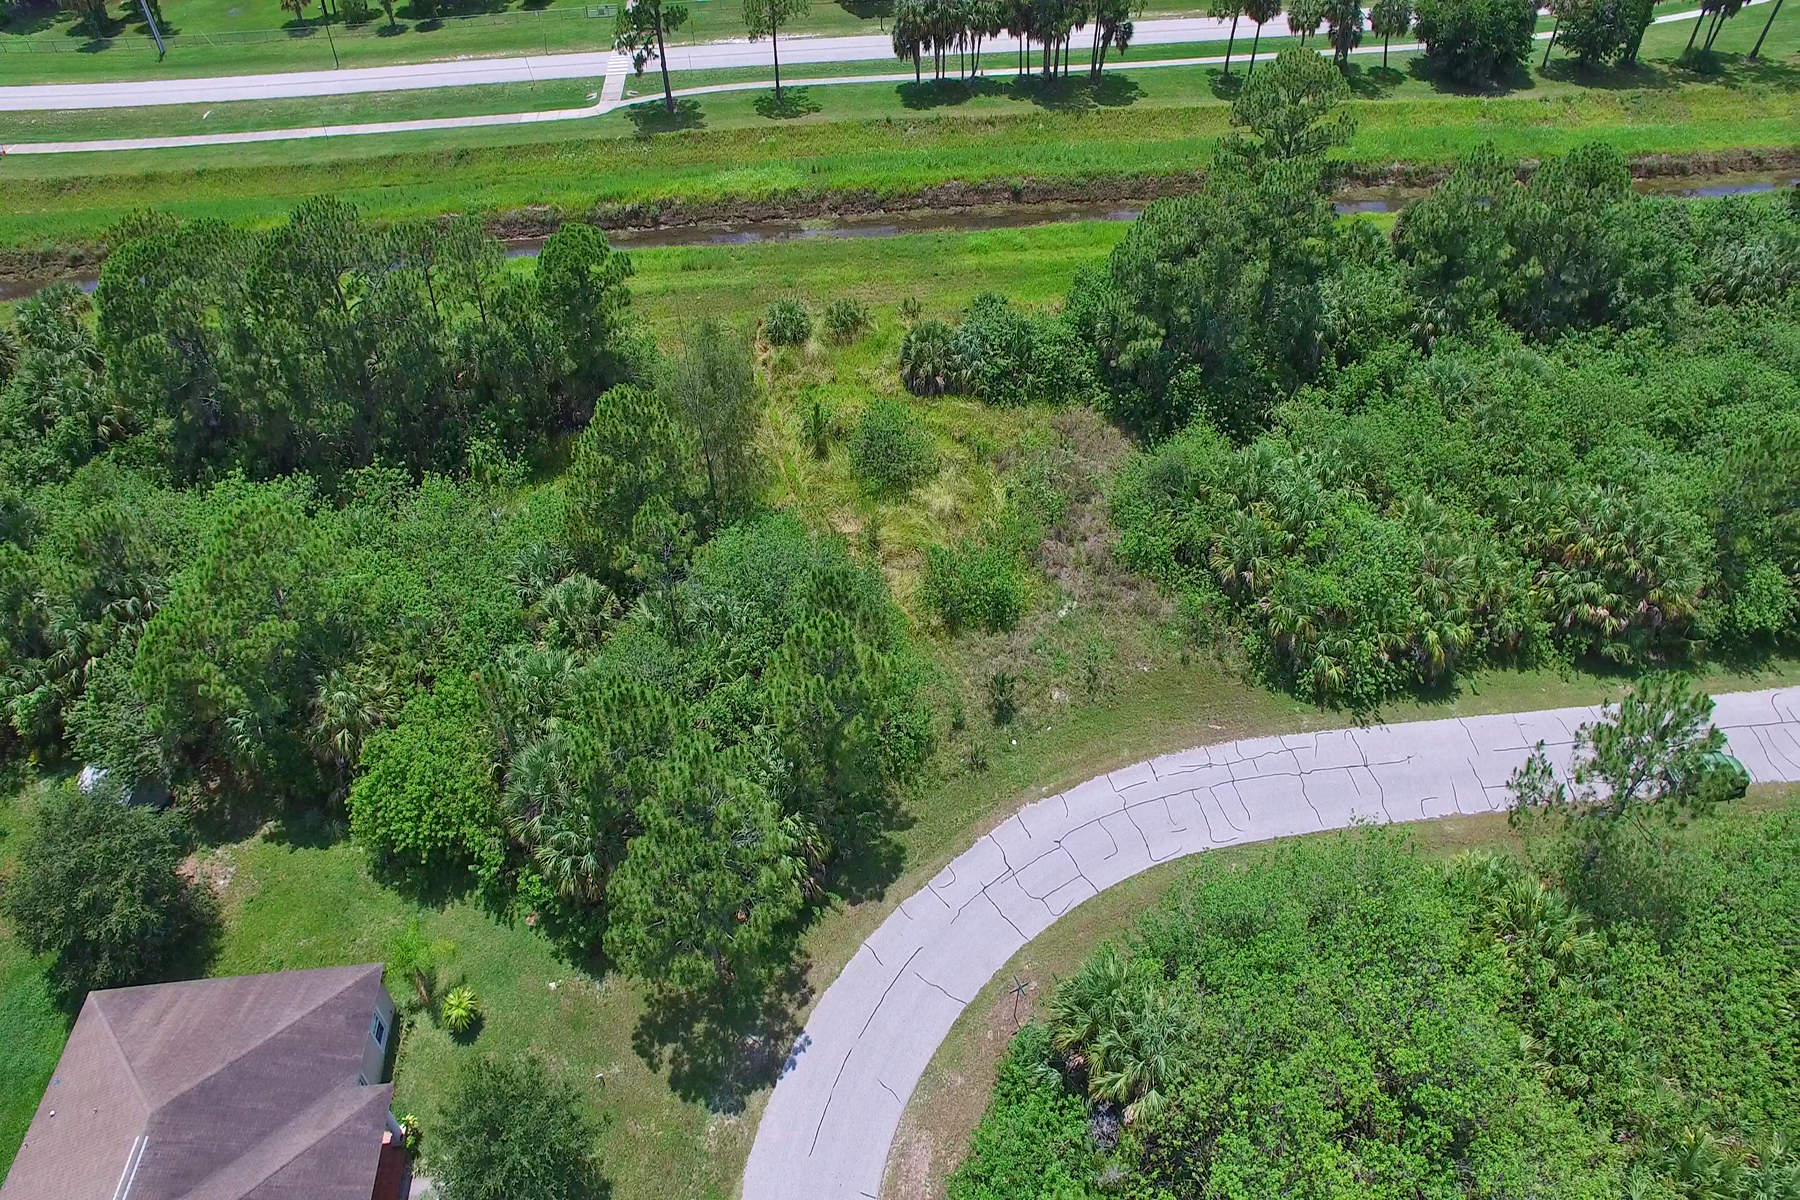 Land for Sale at PALM BAY 397 Cherry Tree Cir NW 9, Palm Bay, Florida 32907 United States